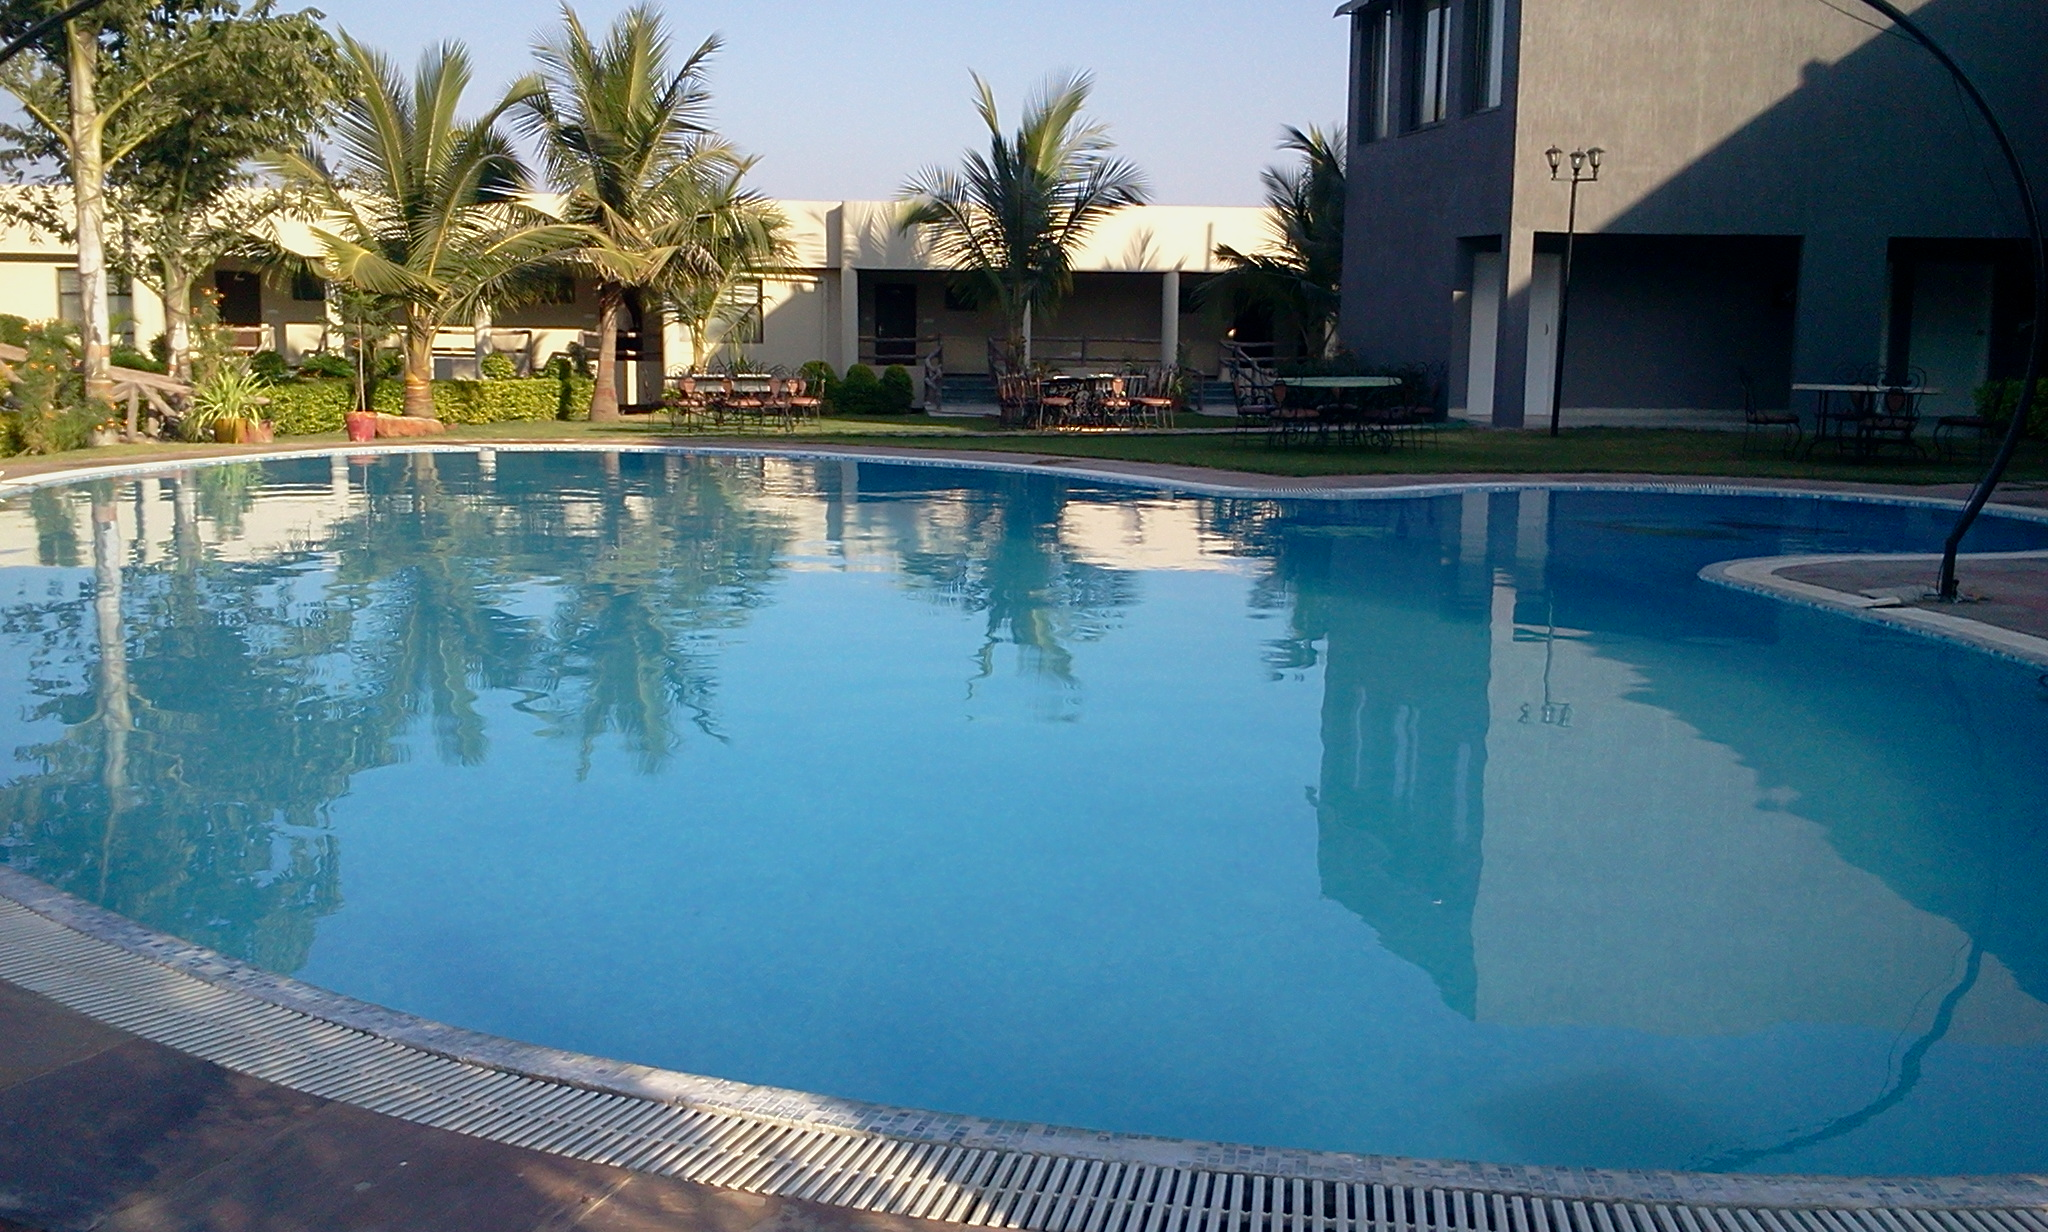 Jeevantara Club & Resort